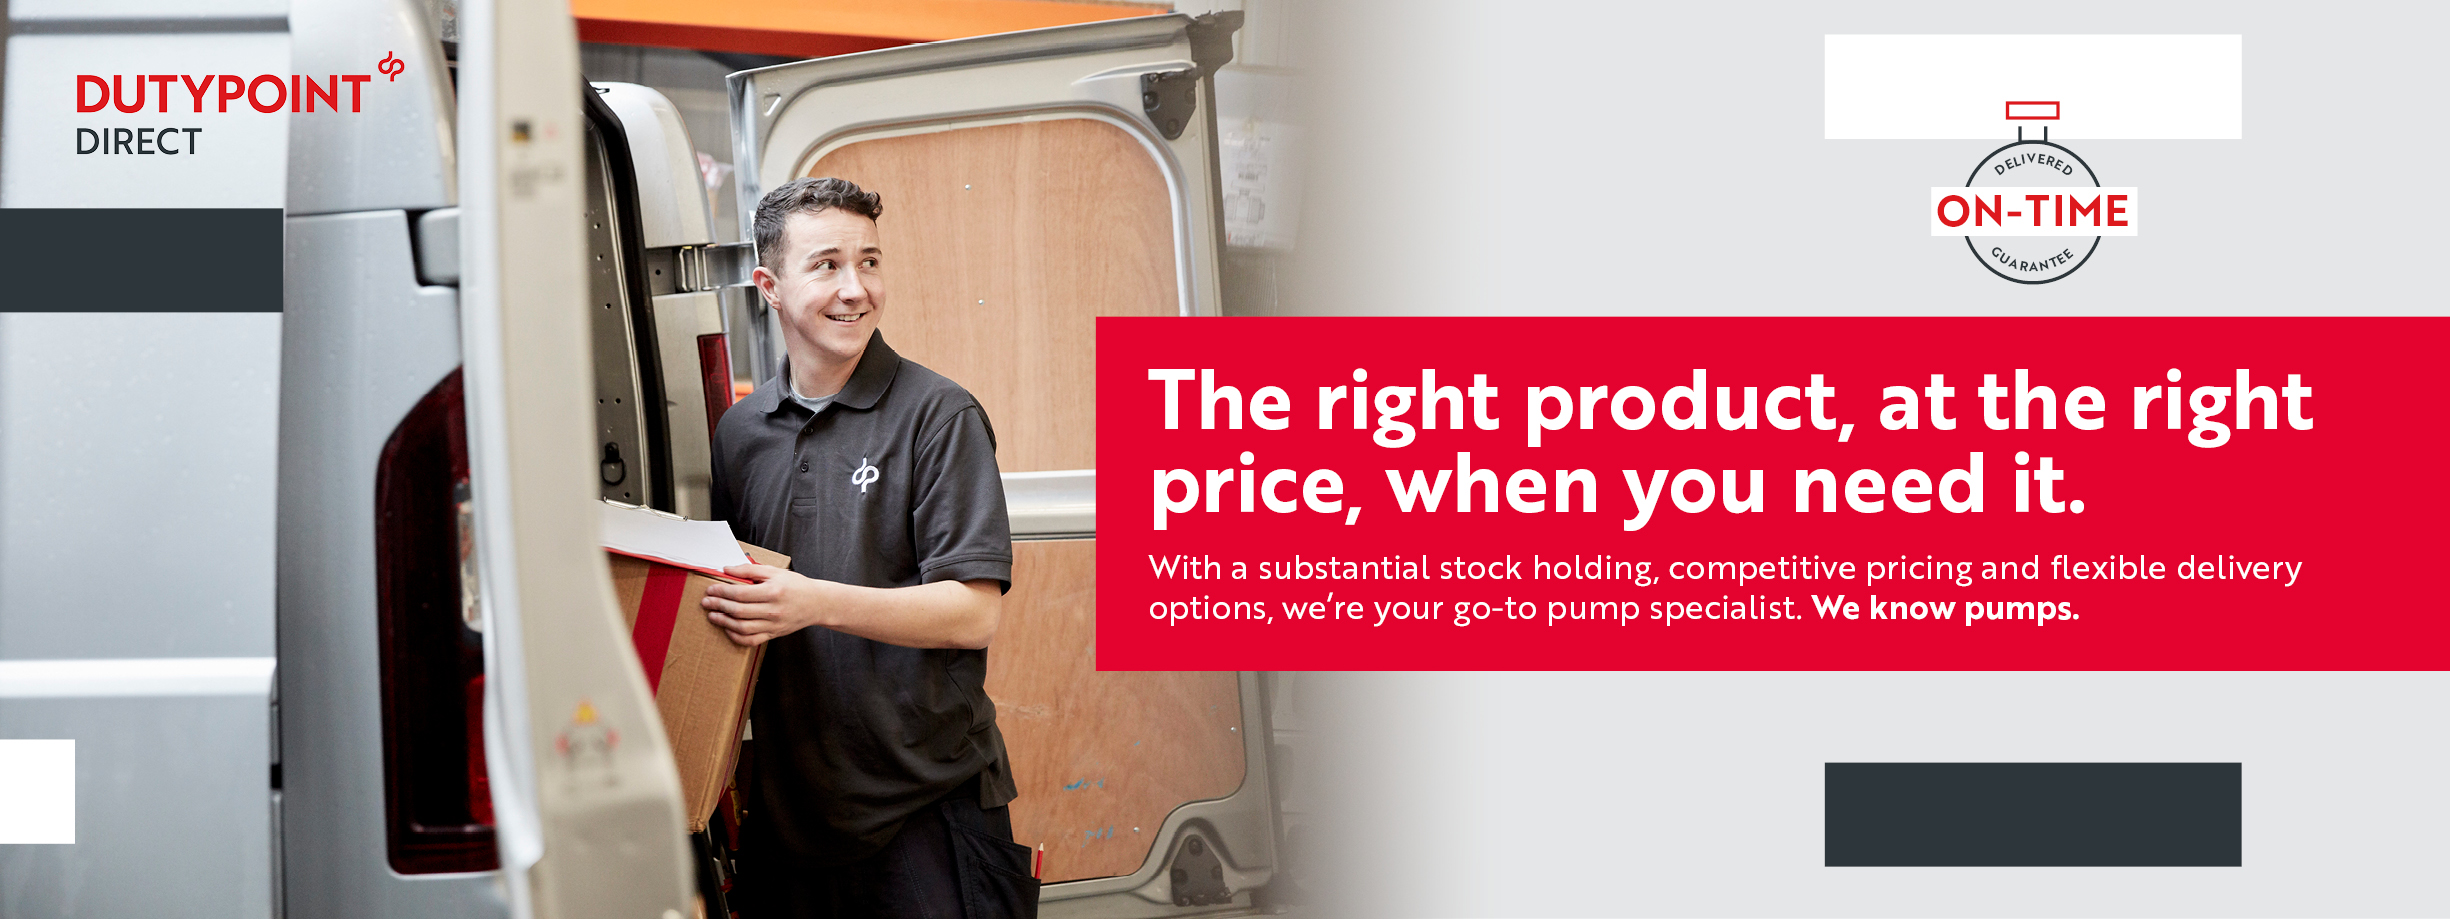 The right product, at the right price, when you need it.